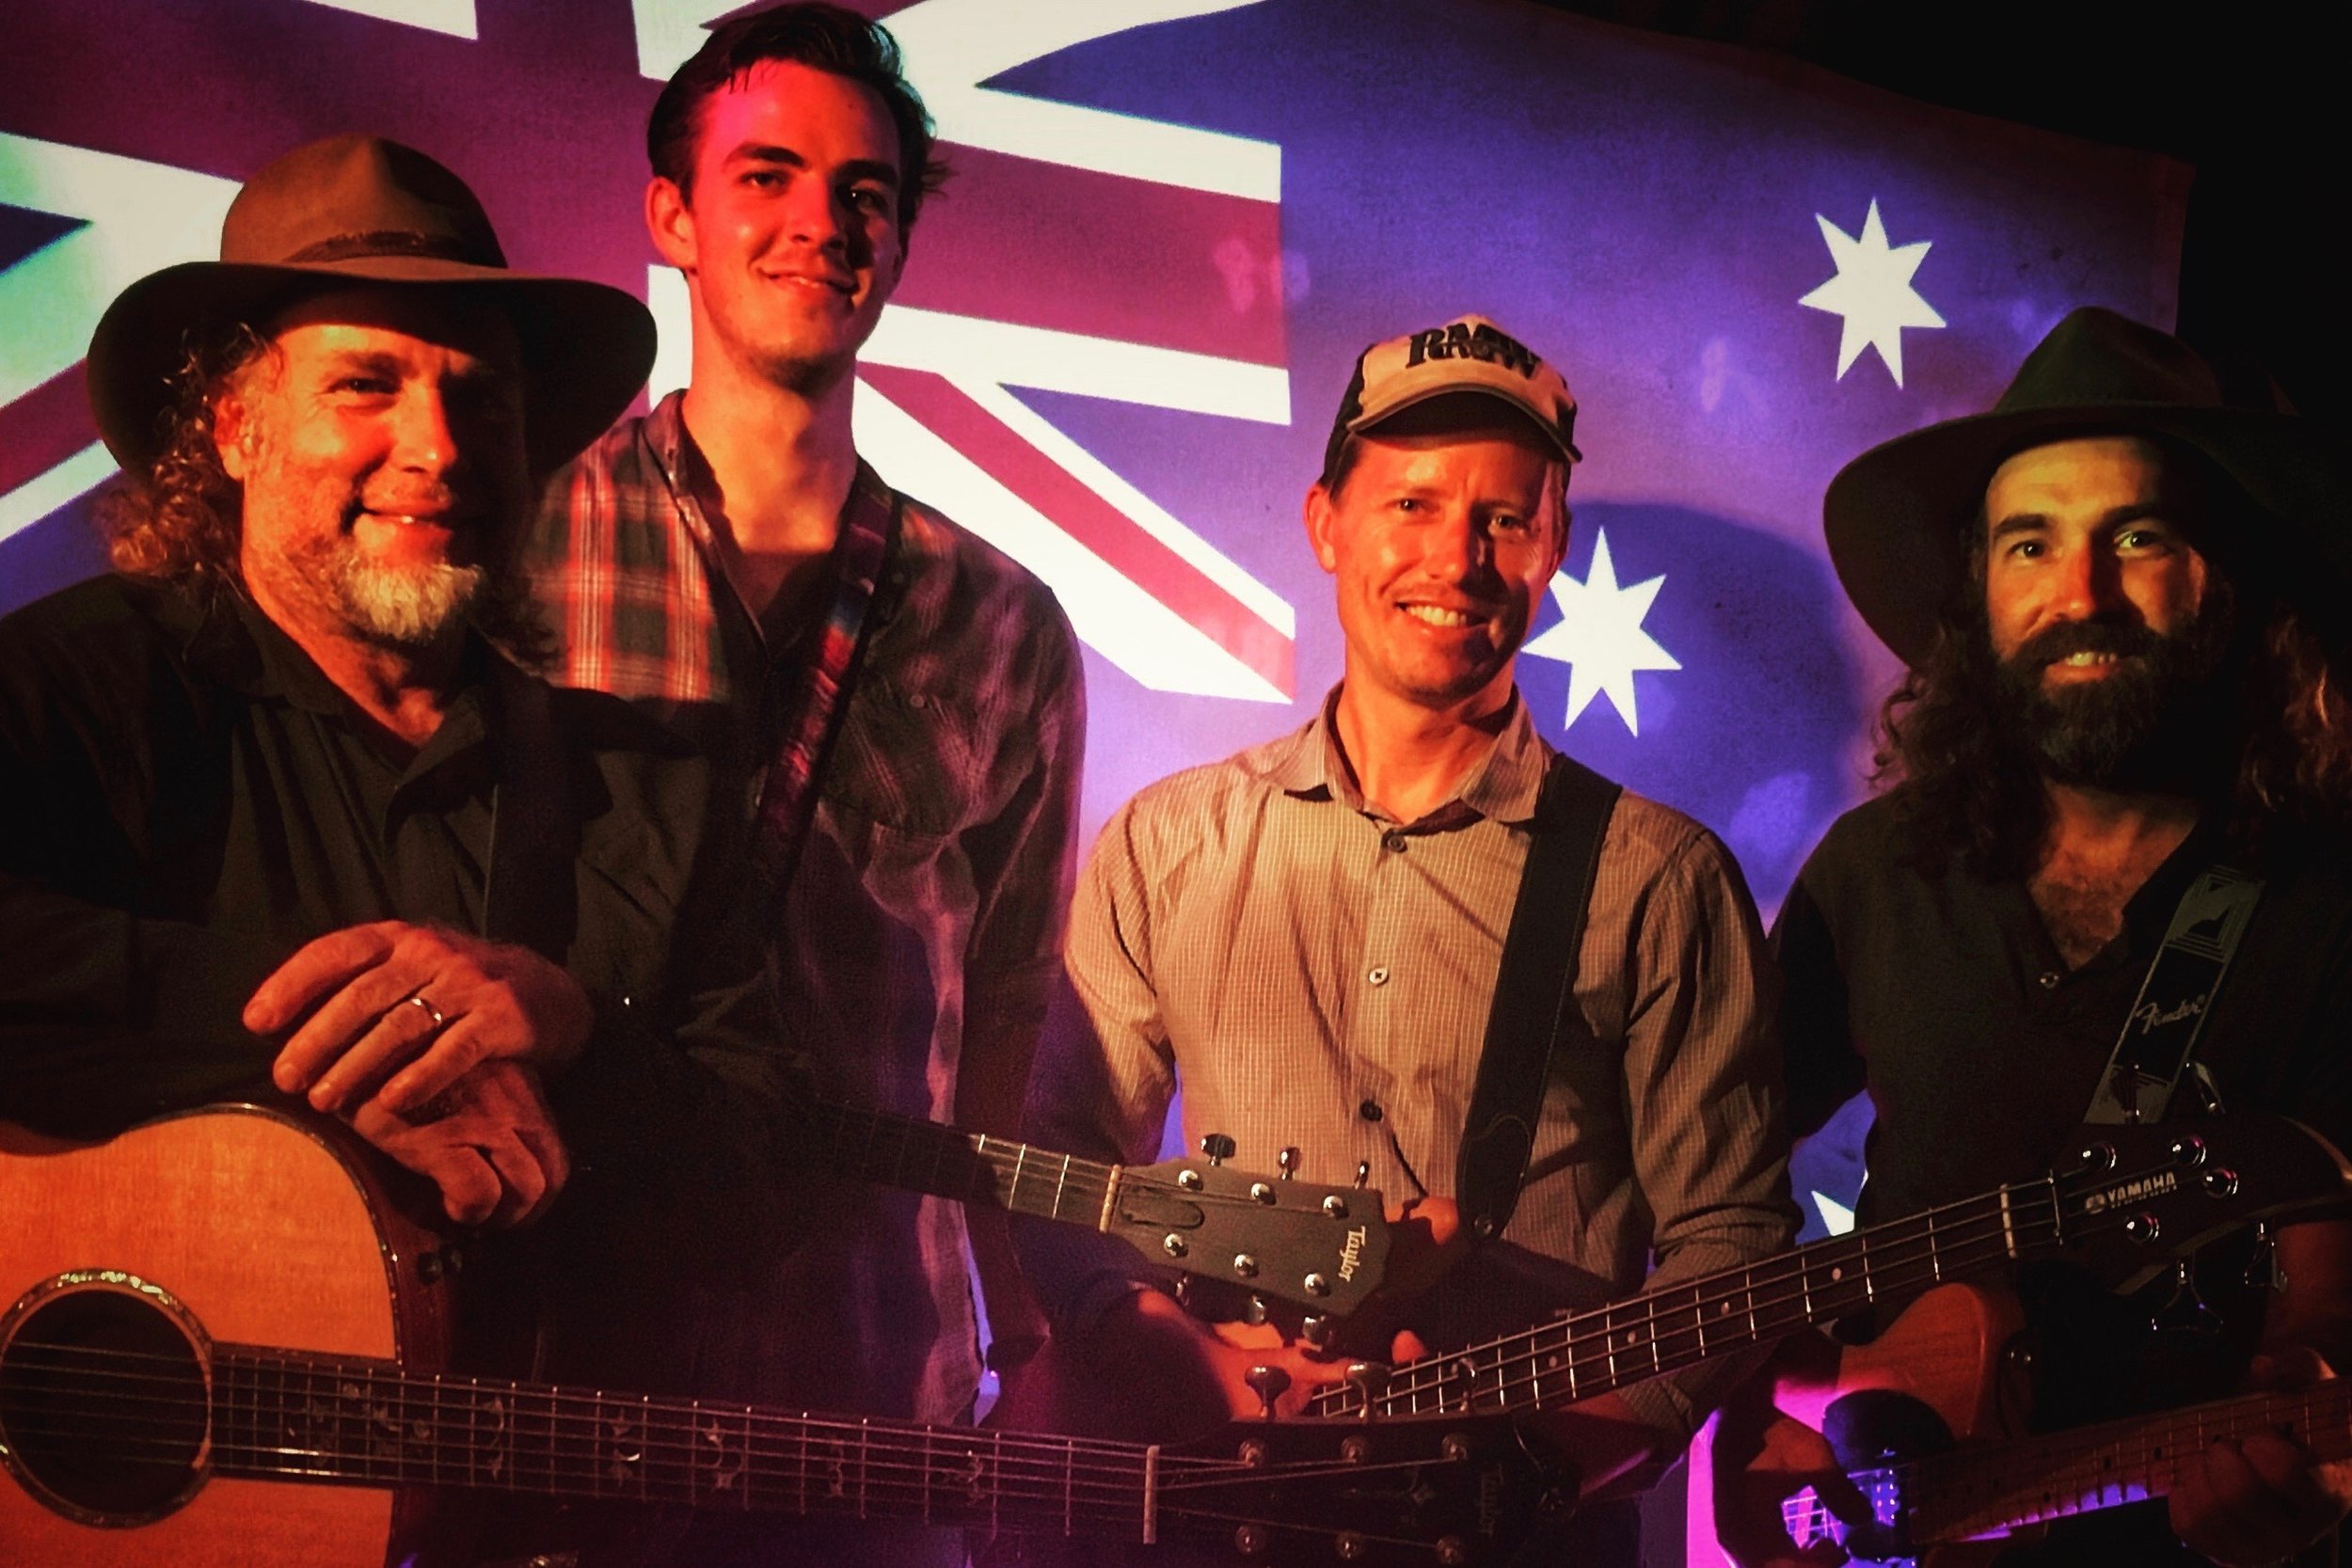 Pictured: Steve with Brendan Huxley, Mal King and Dave Graffin. The band for the Tamworth Country Music Festival 2017.